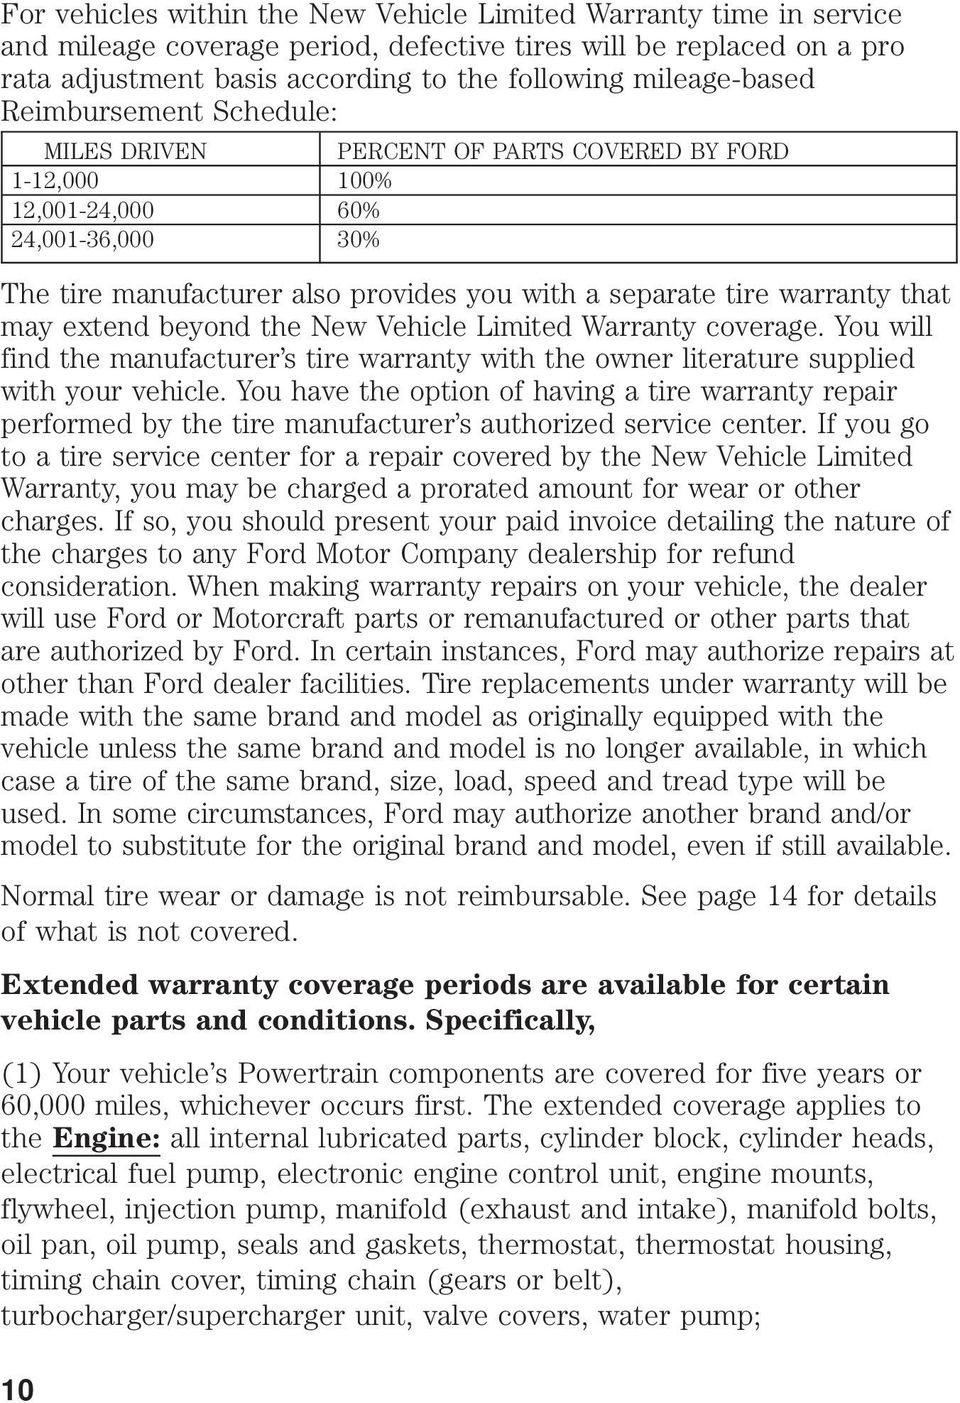 warranty that may extend beyond the New Vehicle Limited Warranty coverage. You will find the manufacturer s tire warranty with the owner literature supplied with your vehicle.